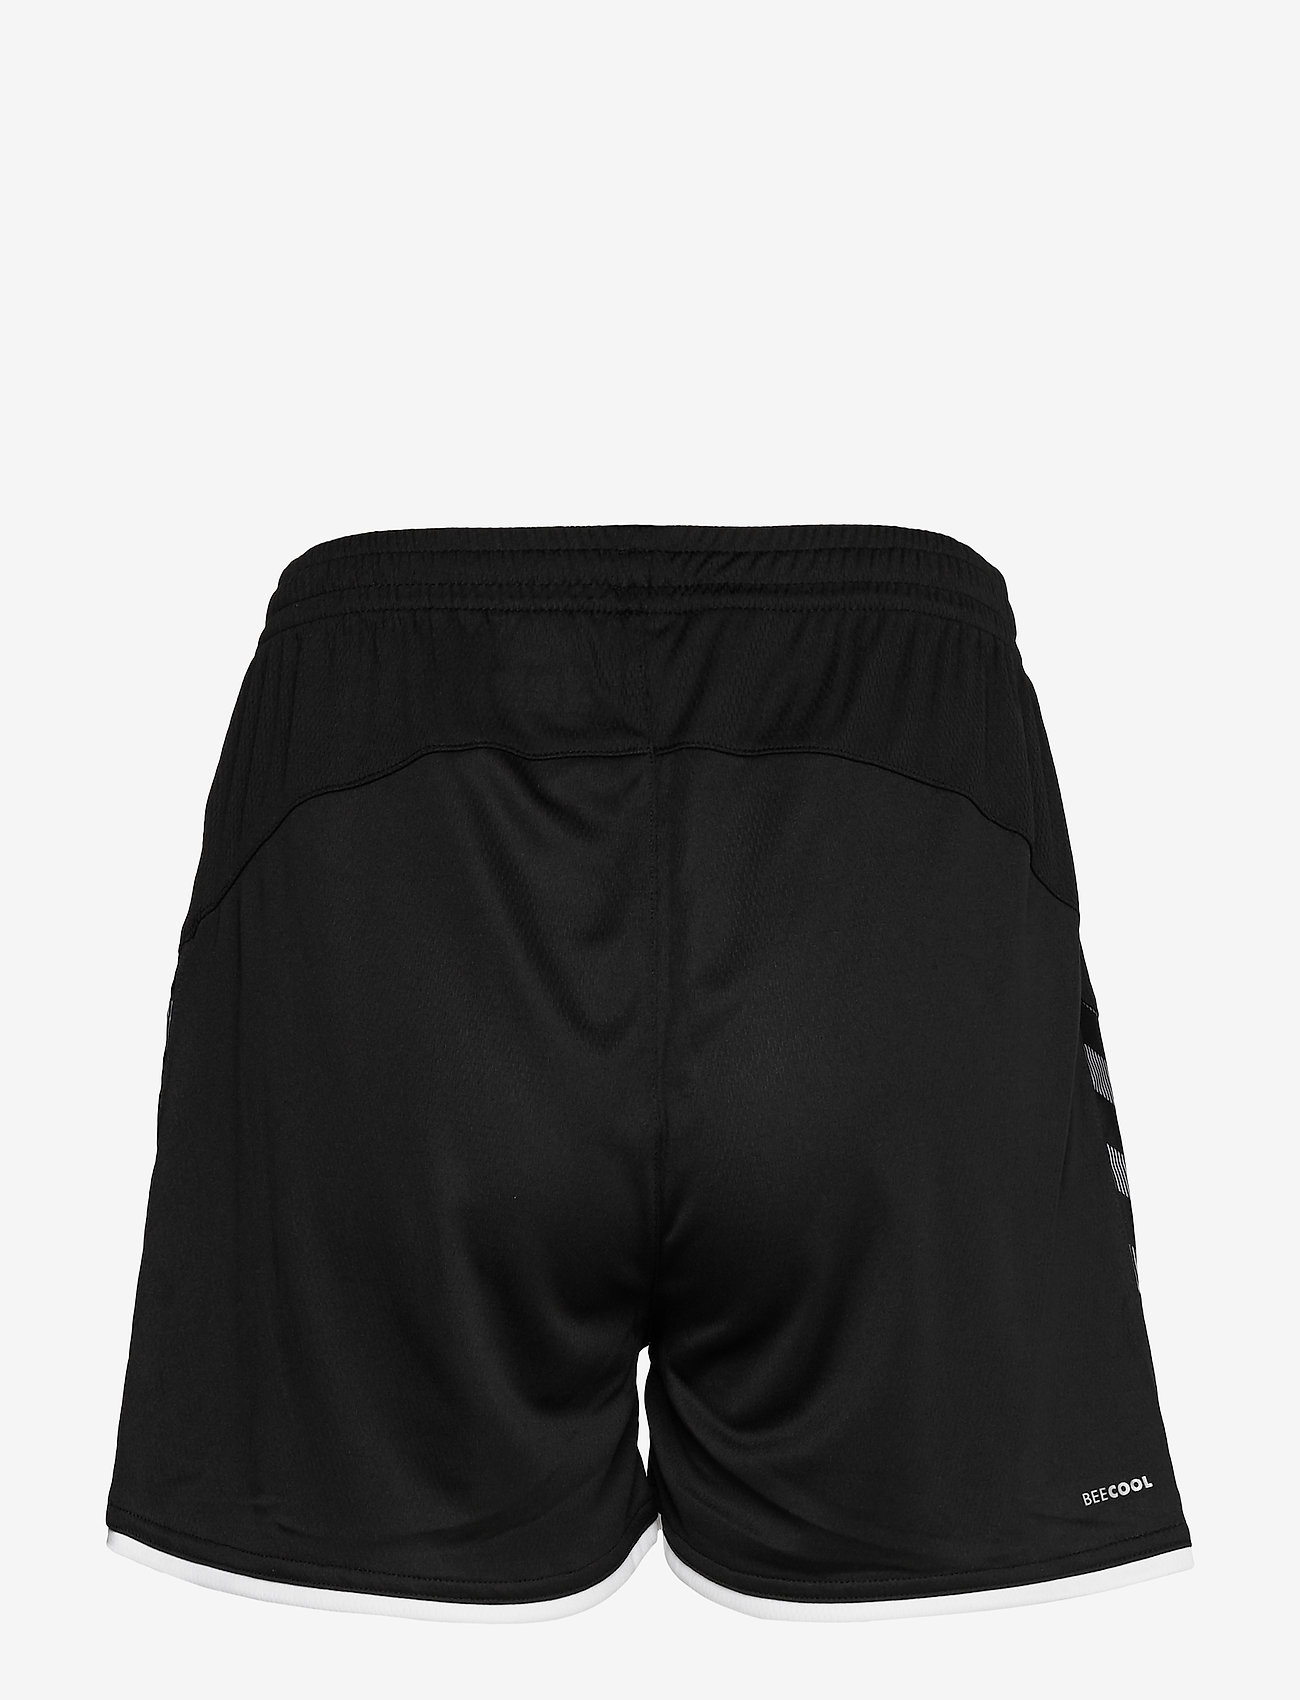 Hummel - hmlAUTHENTIC POLY SHORTS WOMAN - treenishortsit - black/white - 1